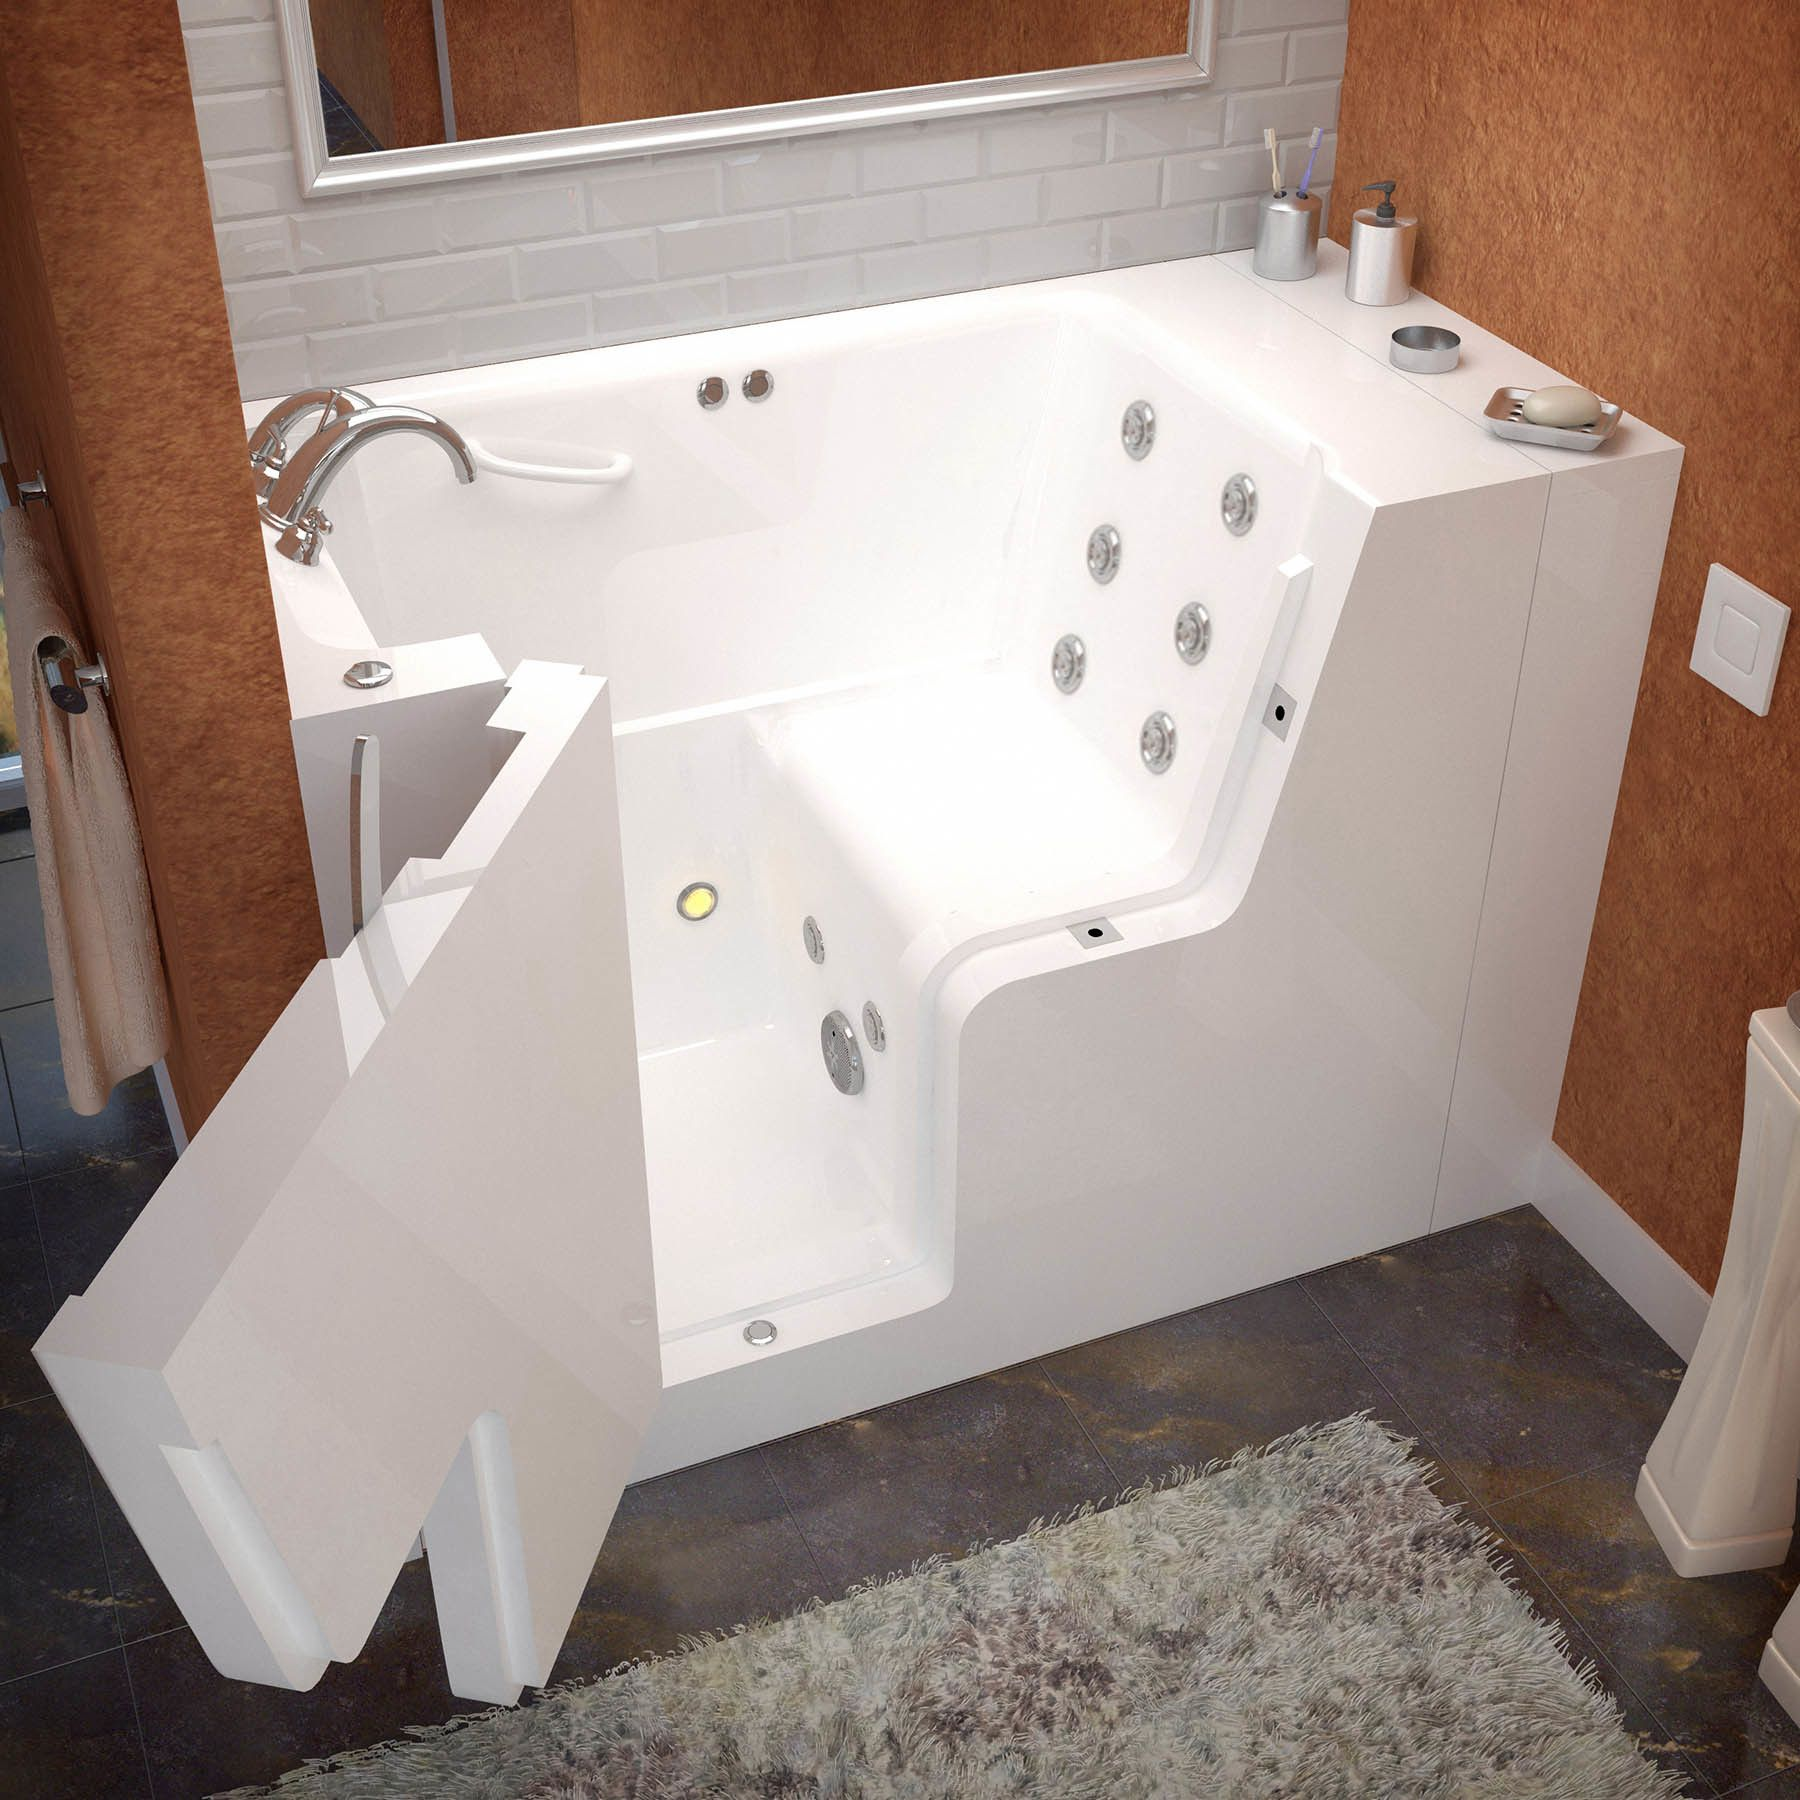 mohave 53 x 29 whirlpool jetted wheelchair accessible bathtub